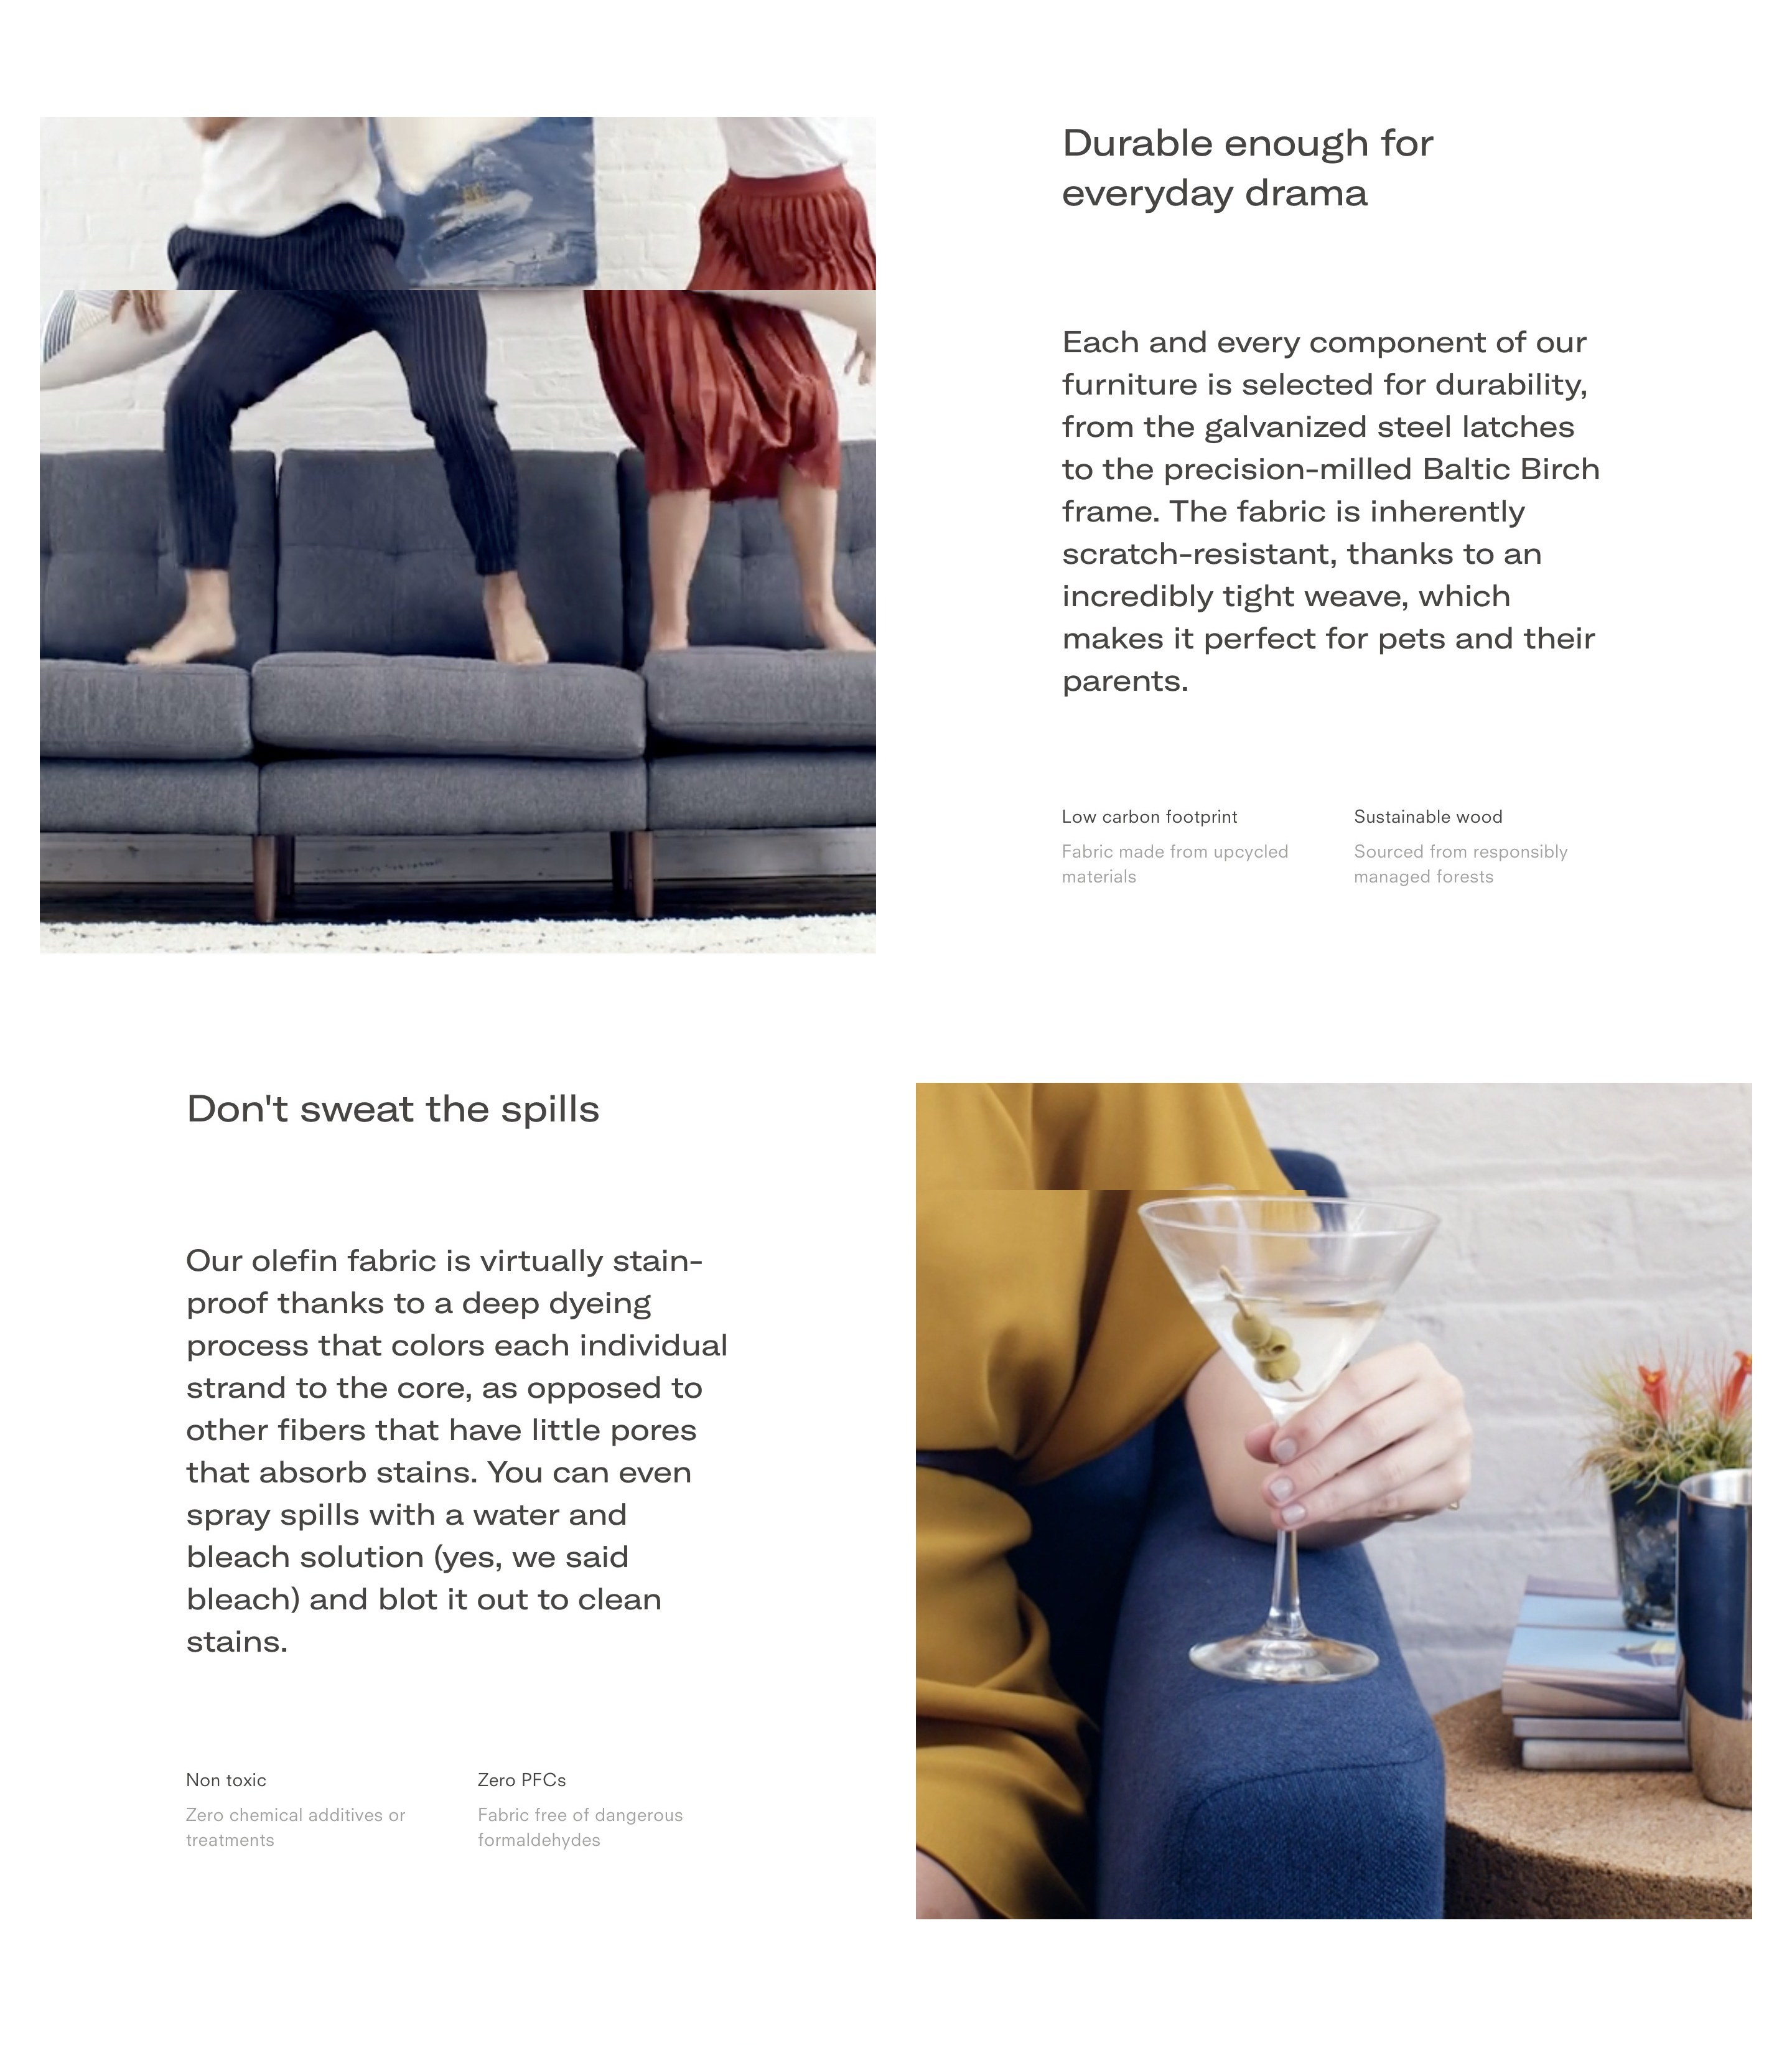 Product Features in Two Column Layout with Product Photos